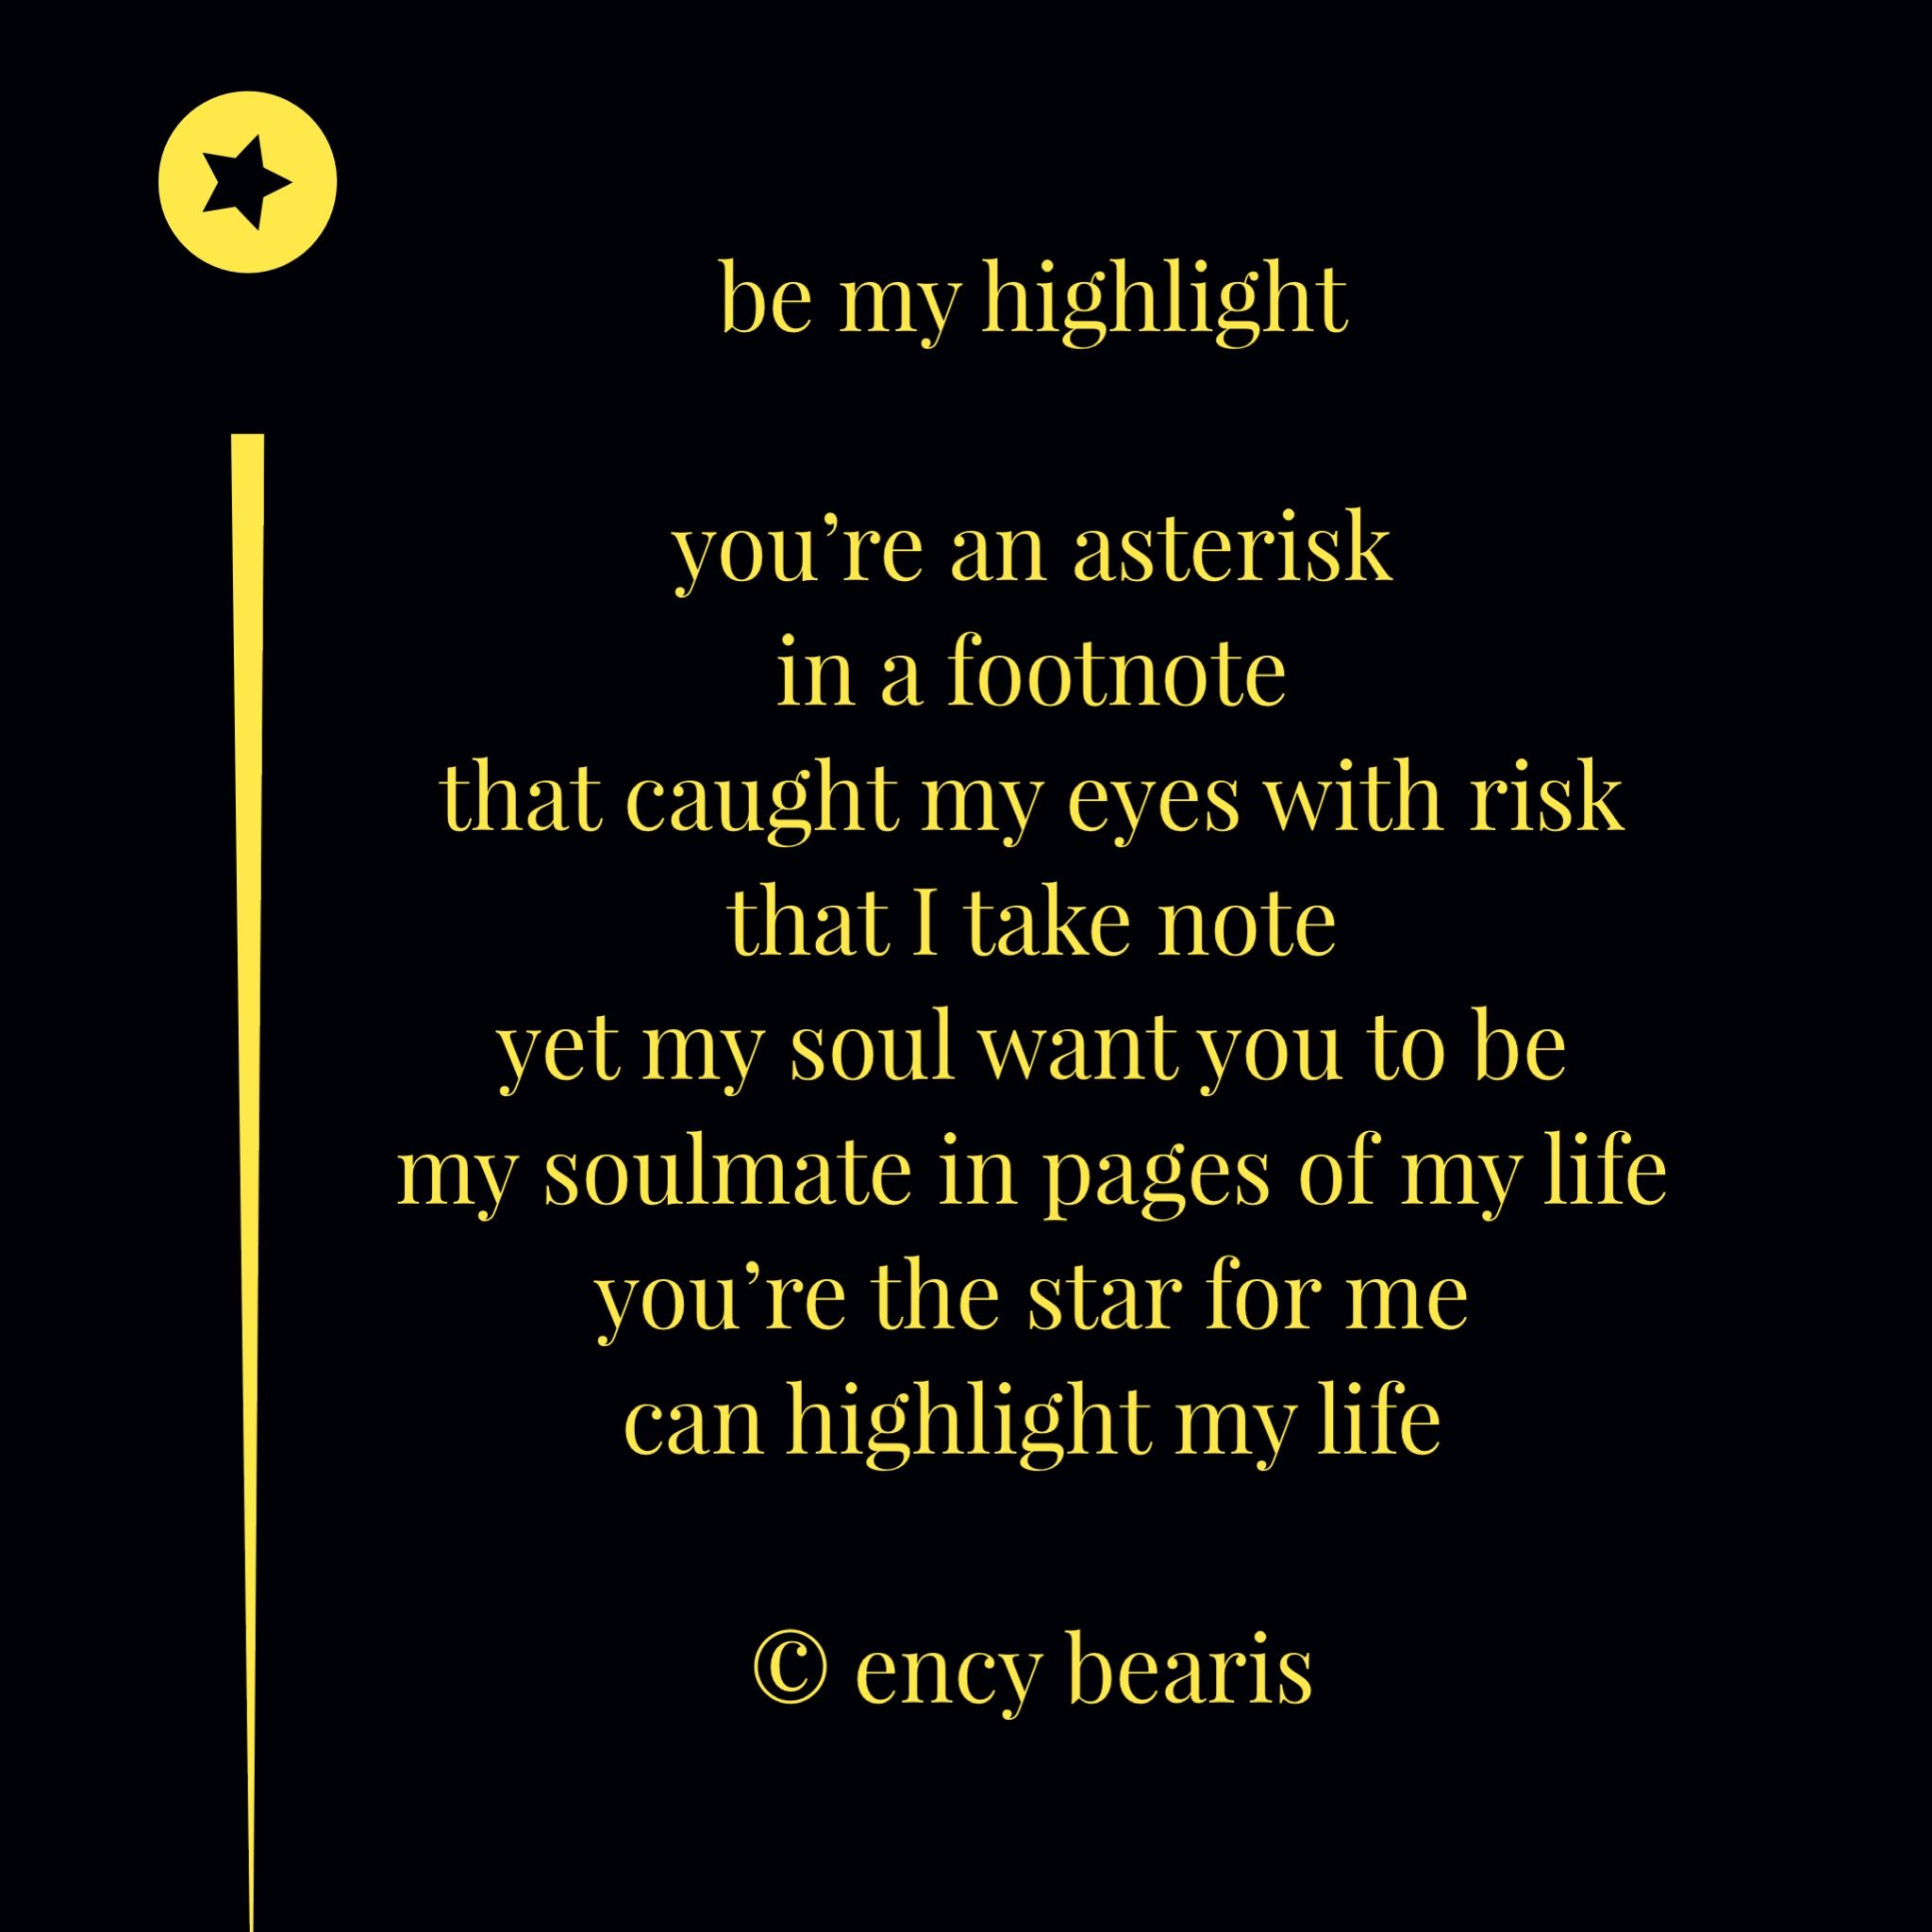 Pin by Ency Bearis on A Quote (With images) | My soulmate